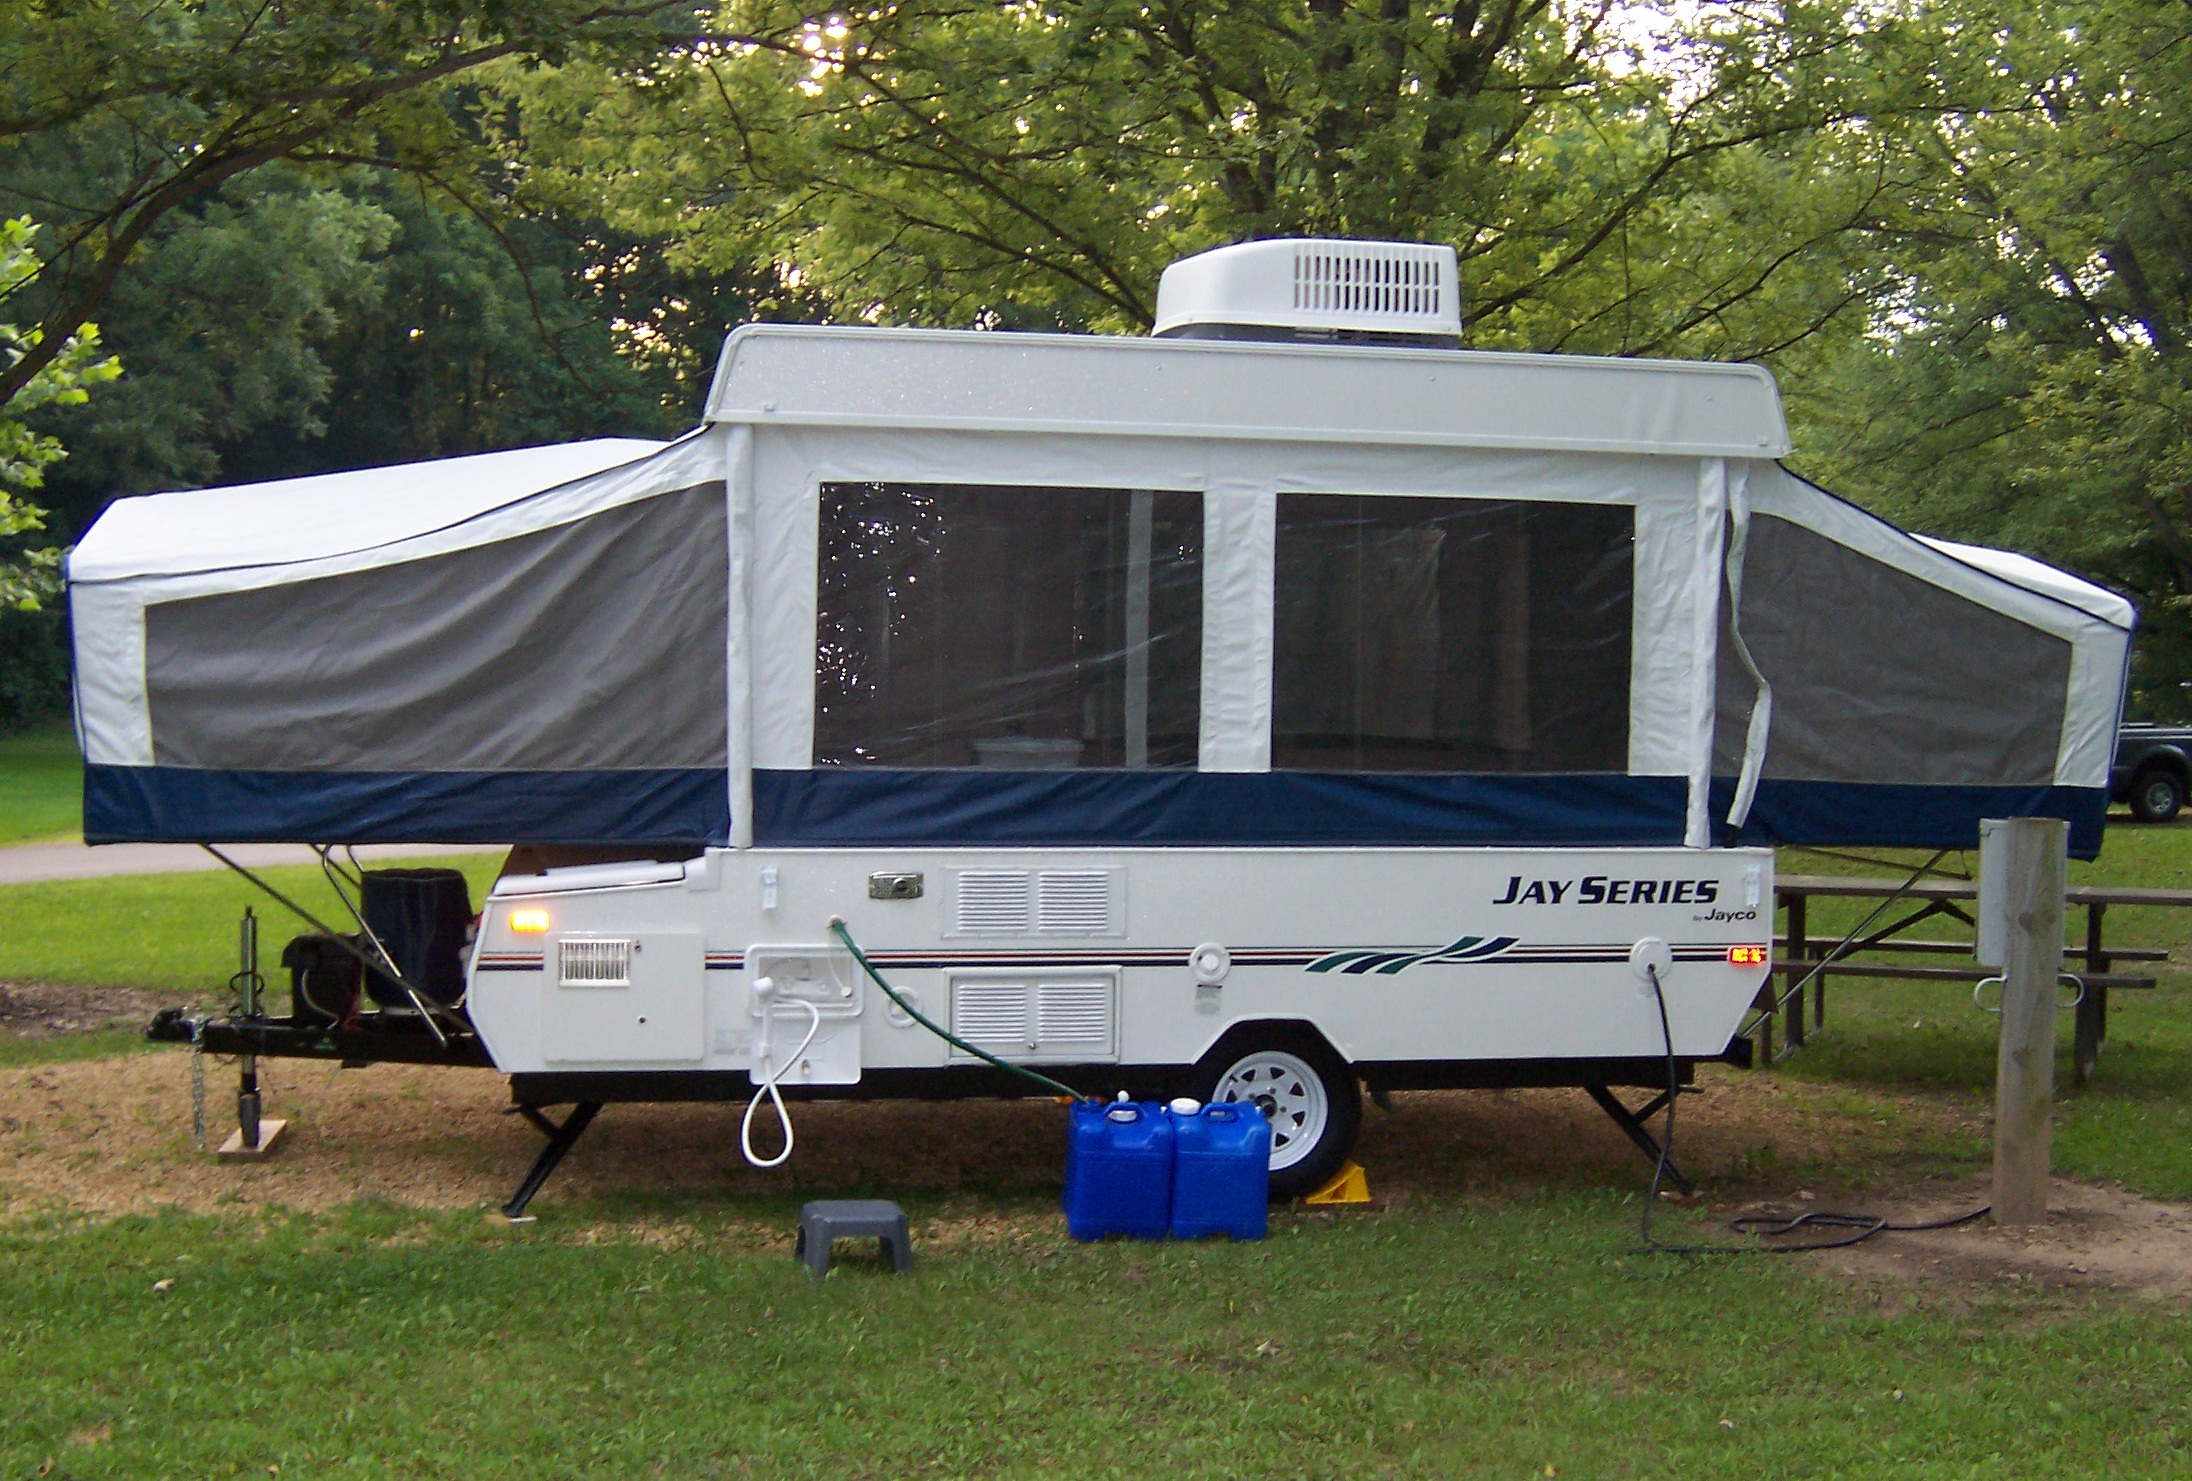 New Kampa Pop 340 Air Pro Air Awning For Pop Up Caravans Campers And